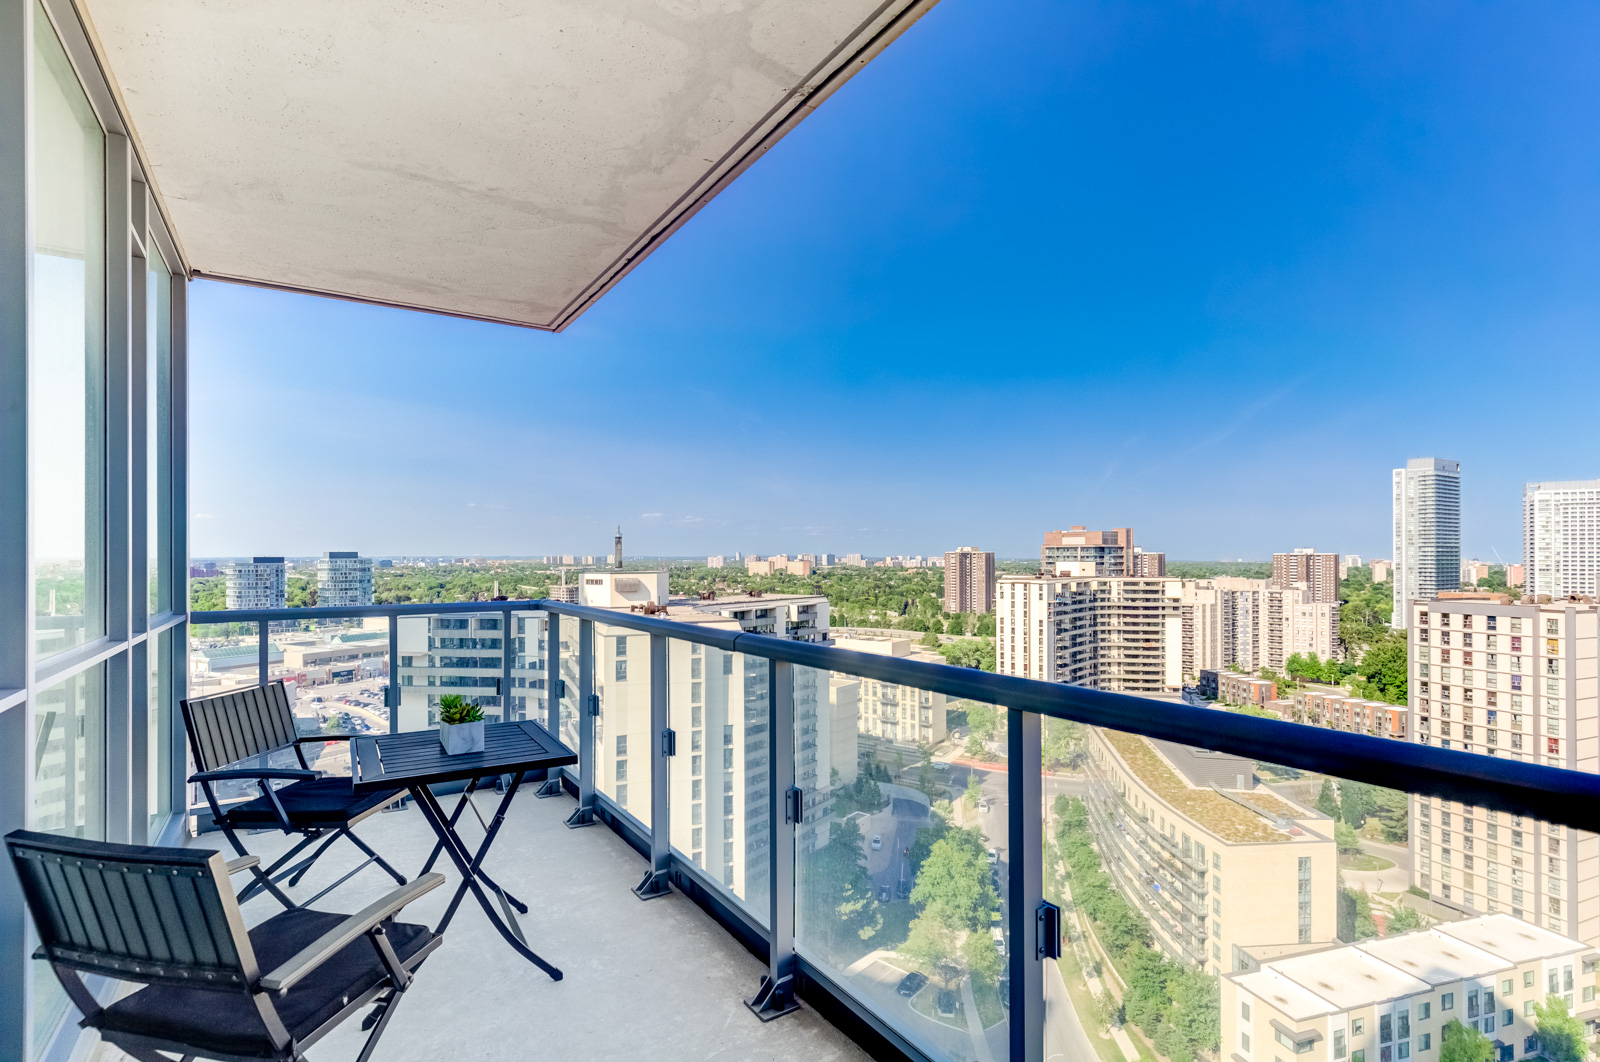 Glass paneled balcony with coffee table and chairs and view of North York, Toronto.